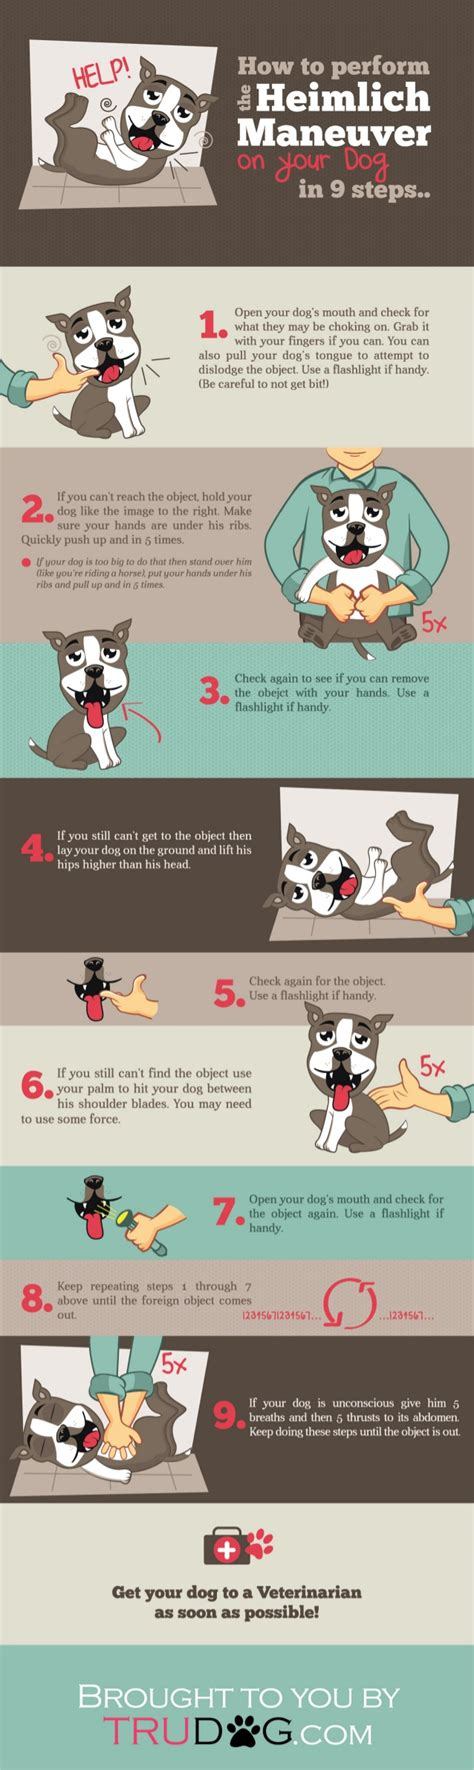 heimlich for dogs how to perform the heimlich maneuver on your in 9 steps